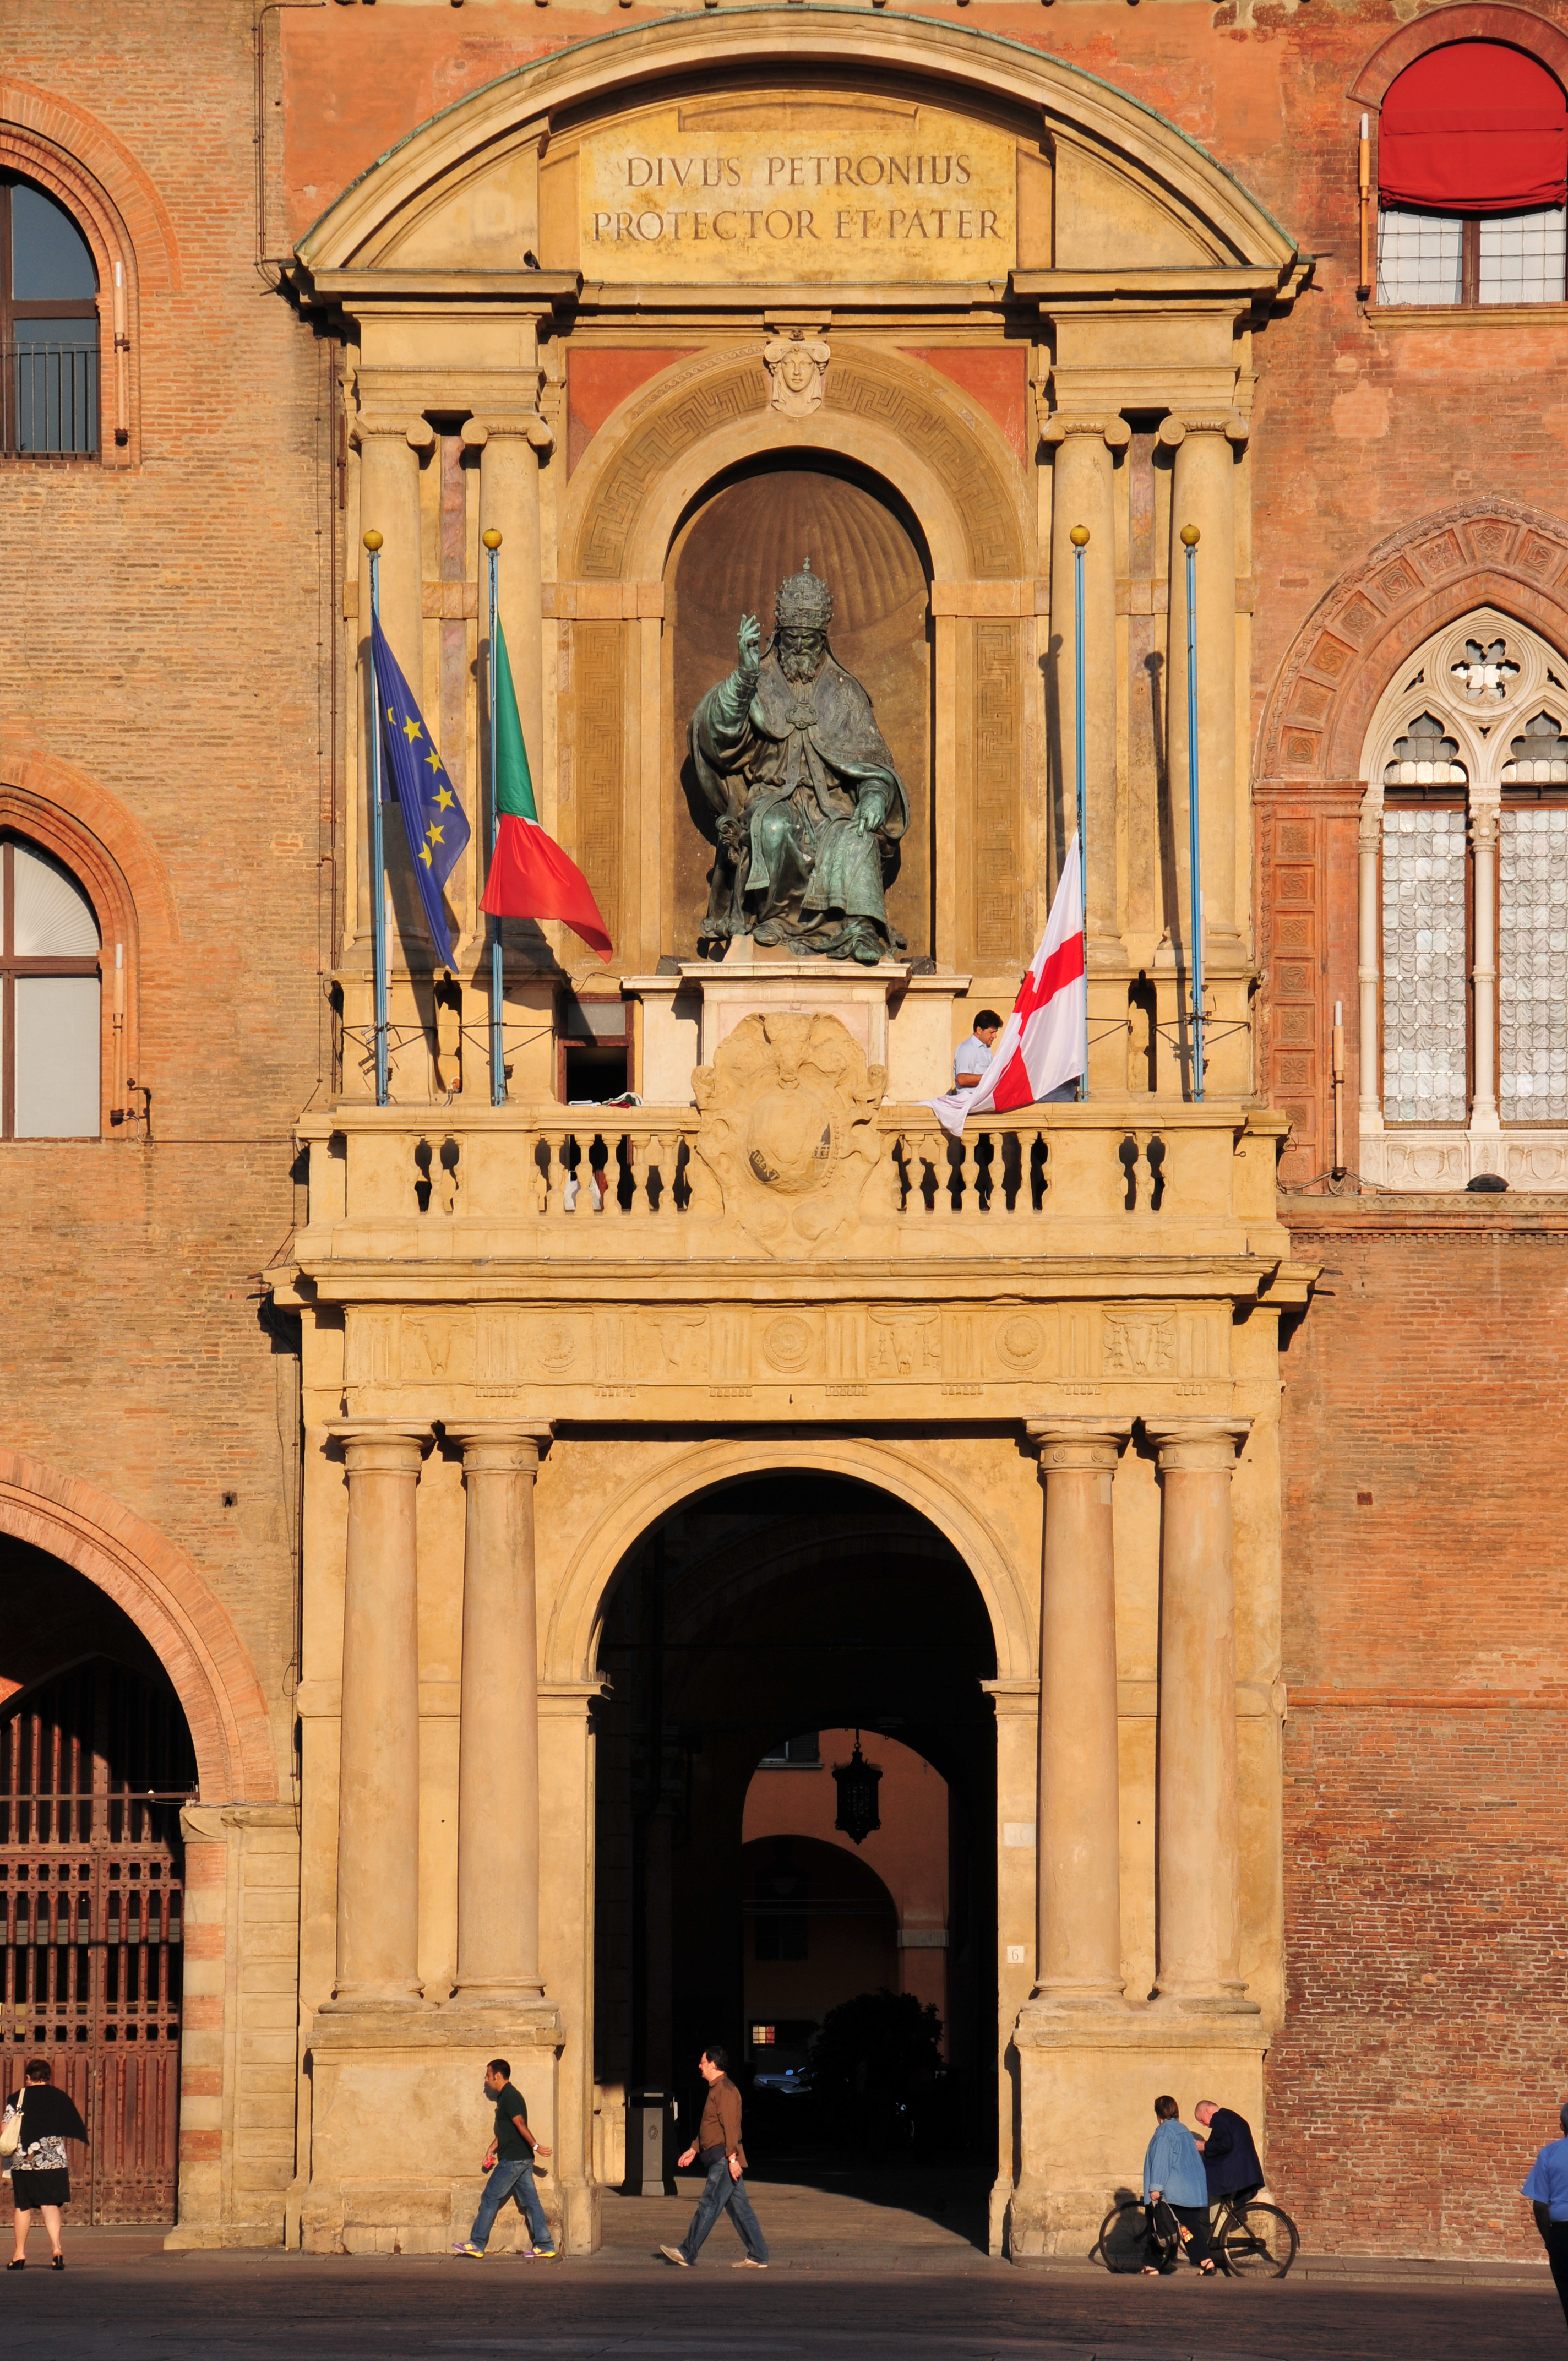 The Best of Bologna - Paus